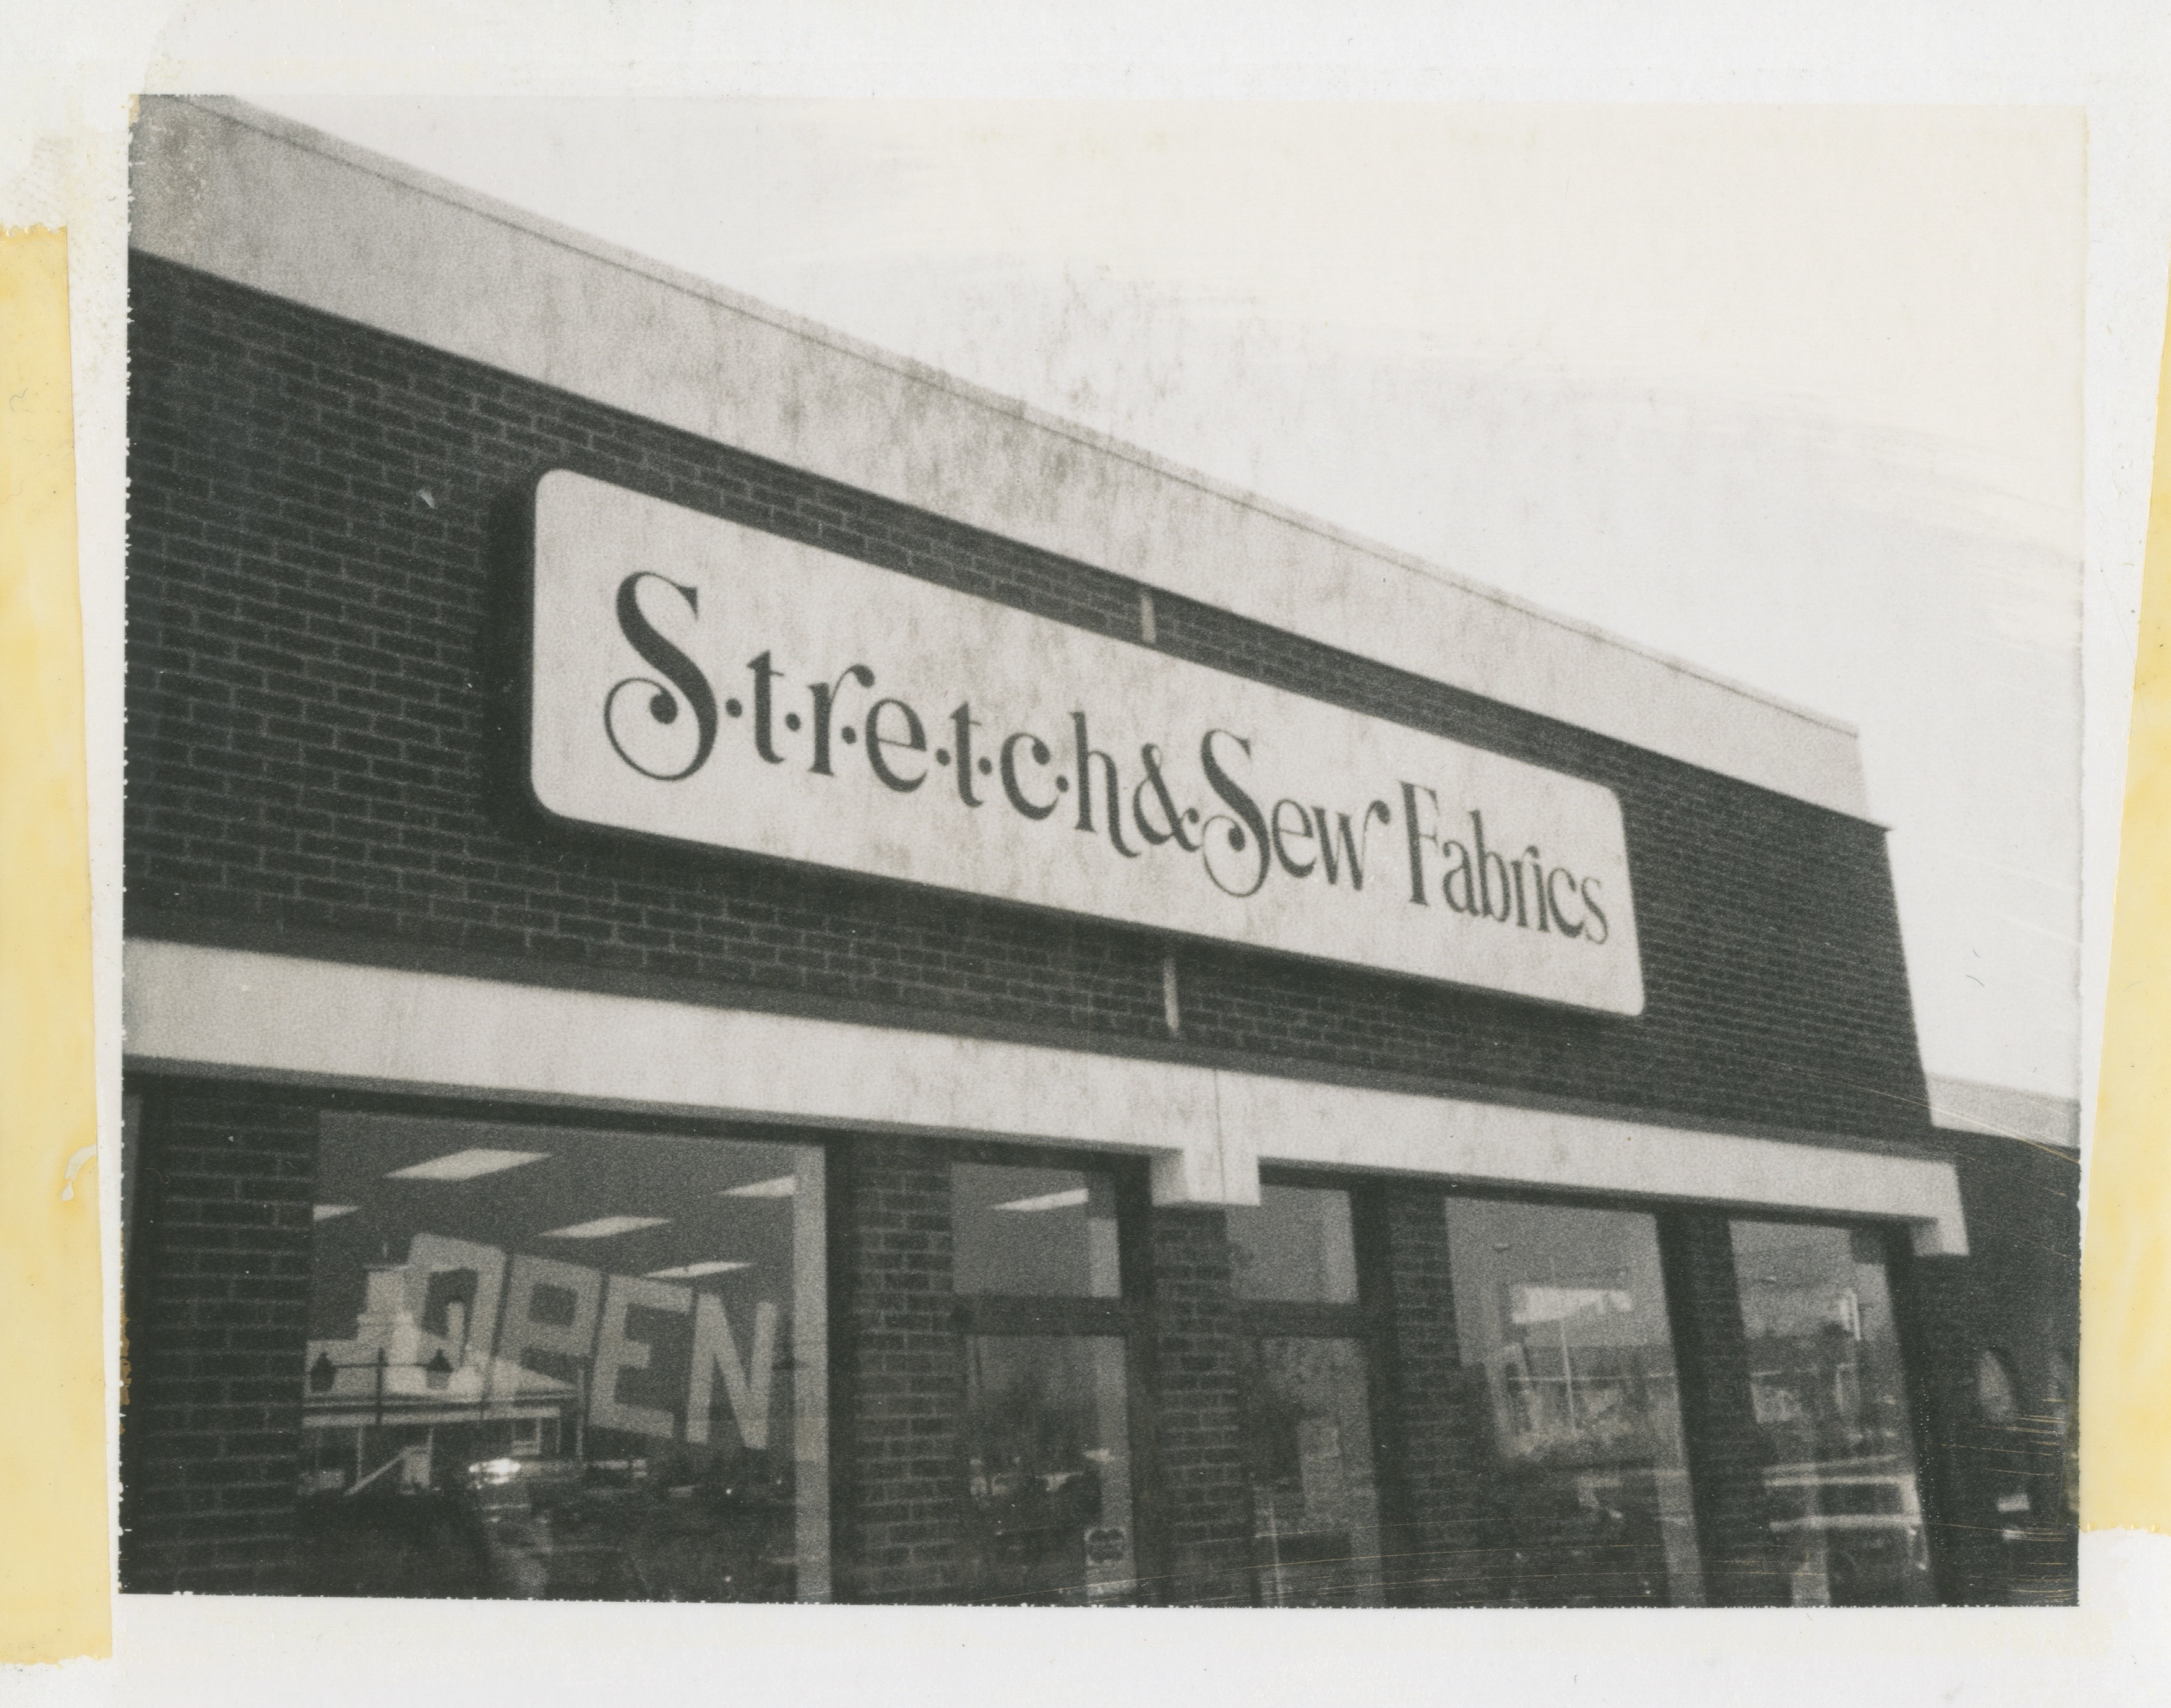 Stretch & Sew Fabrics, 1974 image